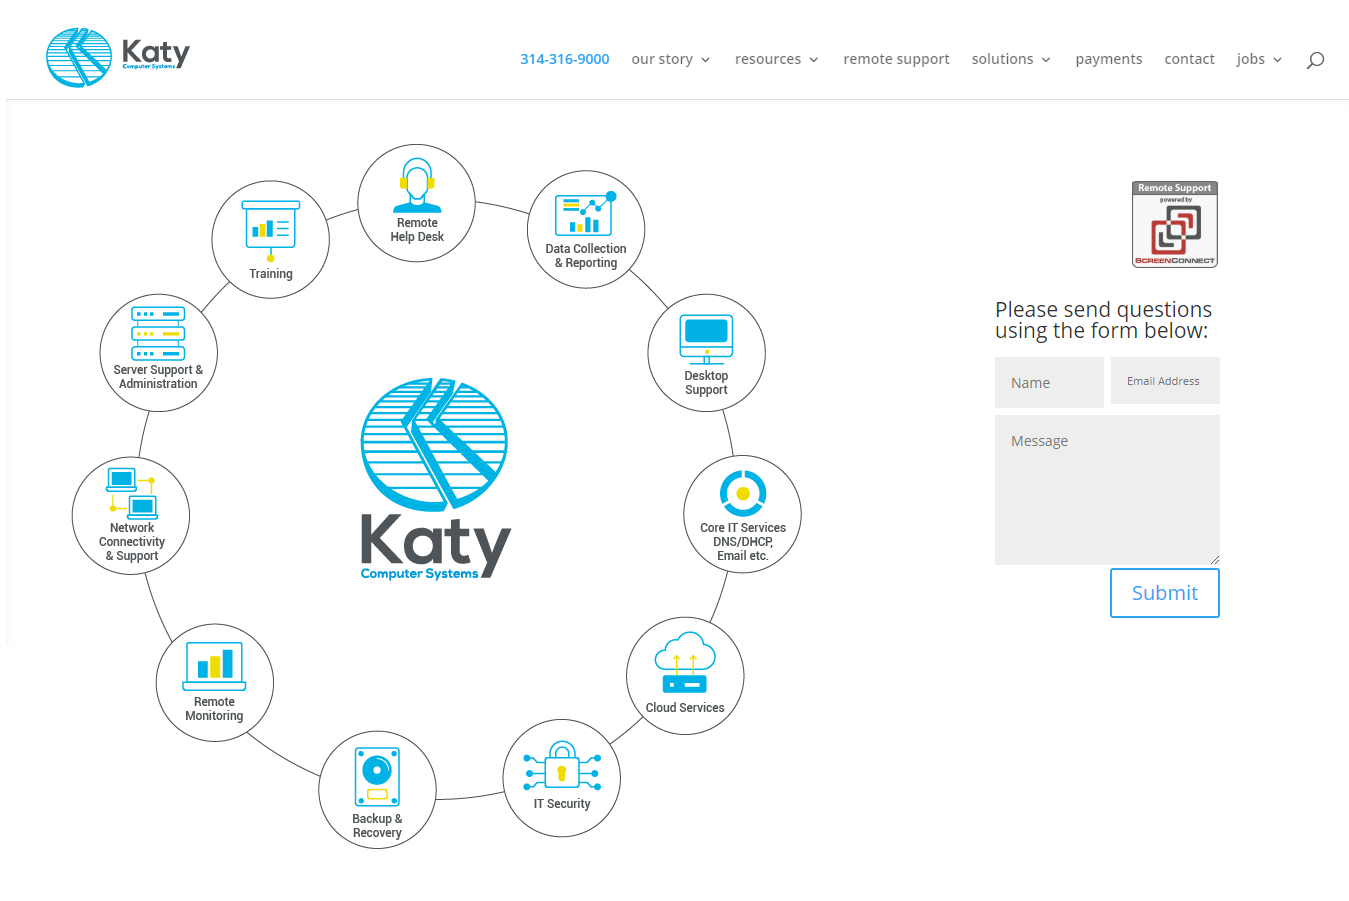 Professional Upmarket It Professional Vector Design For Katy Computer Systems By Yadunath Design 24708707